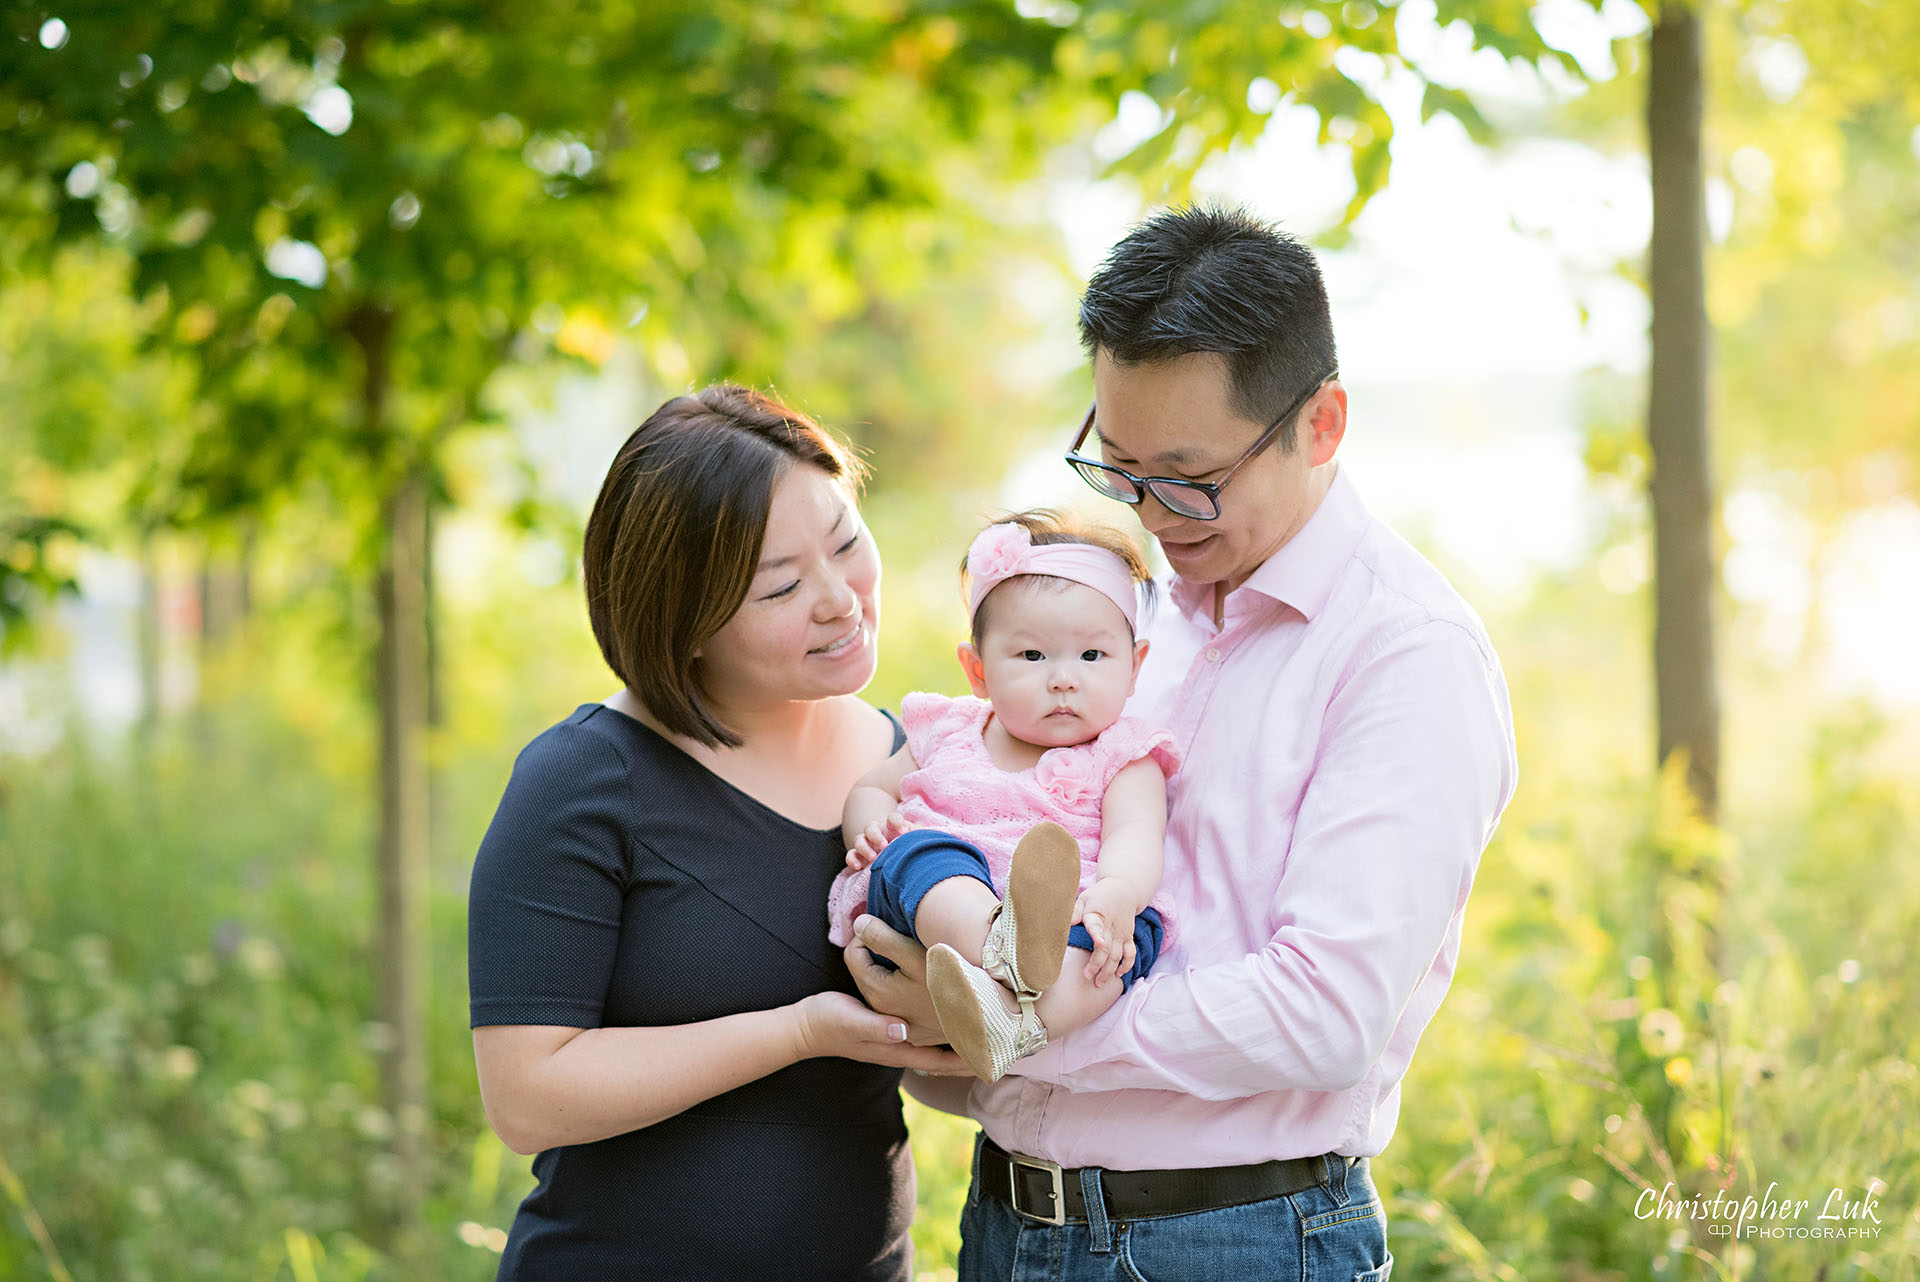 Christopher Luk Toronto Photographer Lake Wilcox Park Family Baby Newborn Richmond Hill Session Mother Mom Father Dad Husband Wife Daughter Sister Baby Hug Hold Candid Natural Photojournalistic